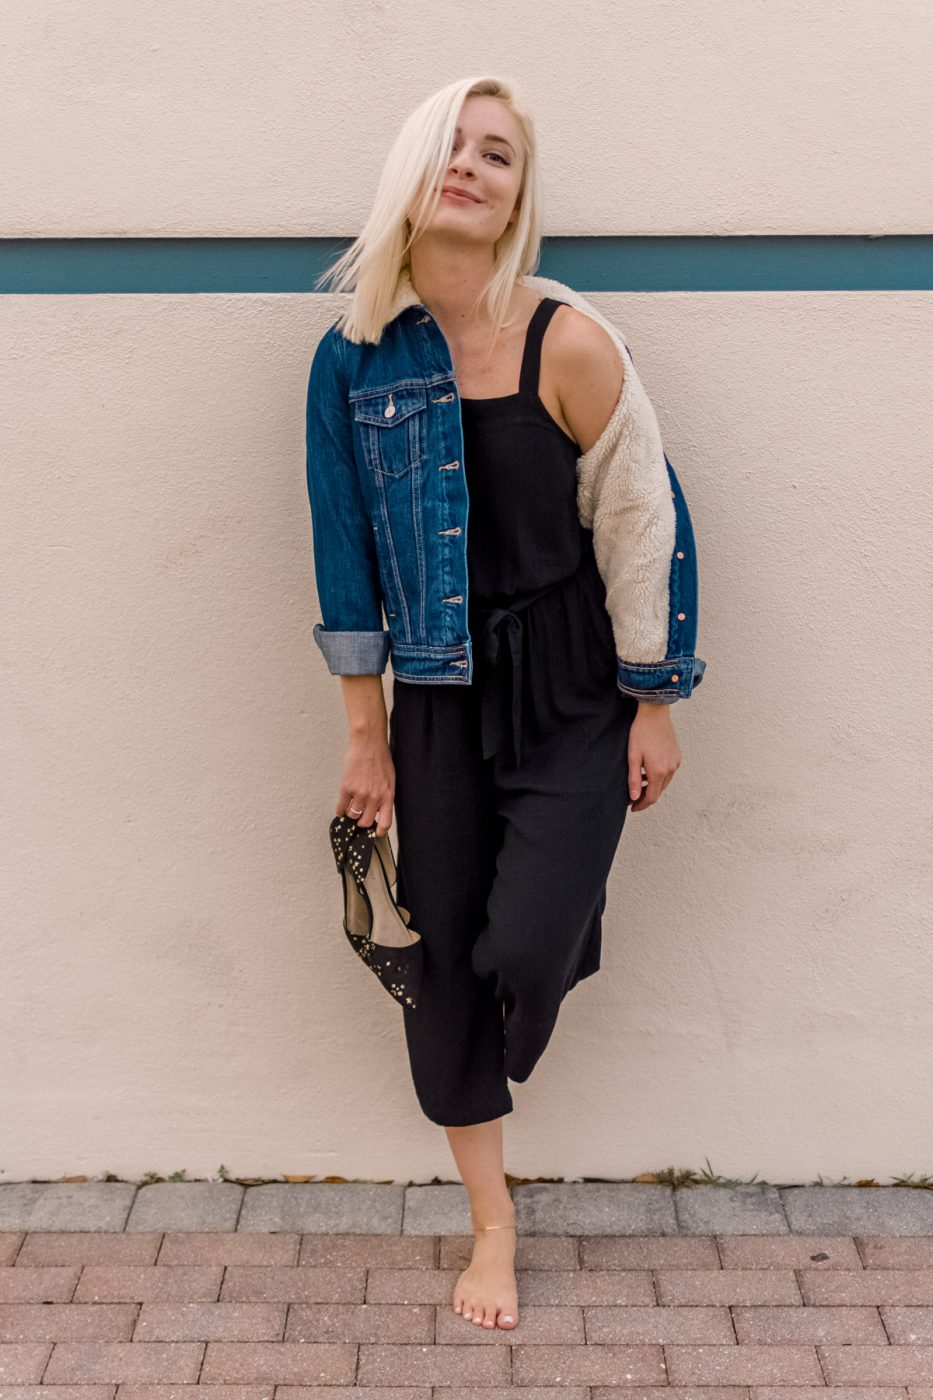 Sherpa Jacket & Jumpsuit from Old Navy - Sweet Teal